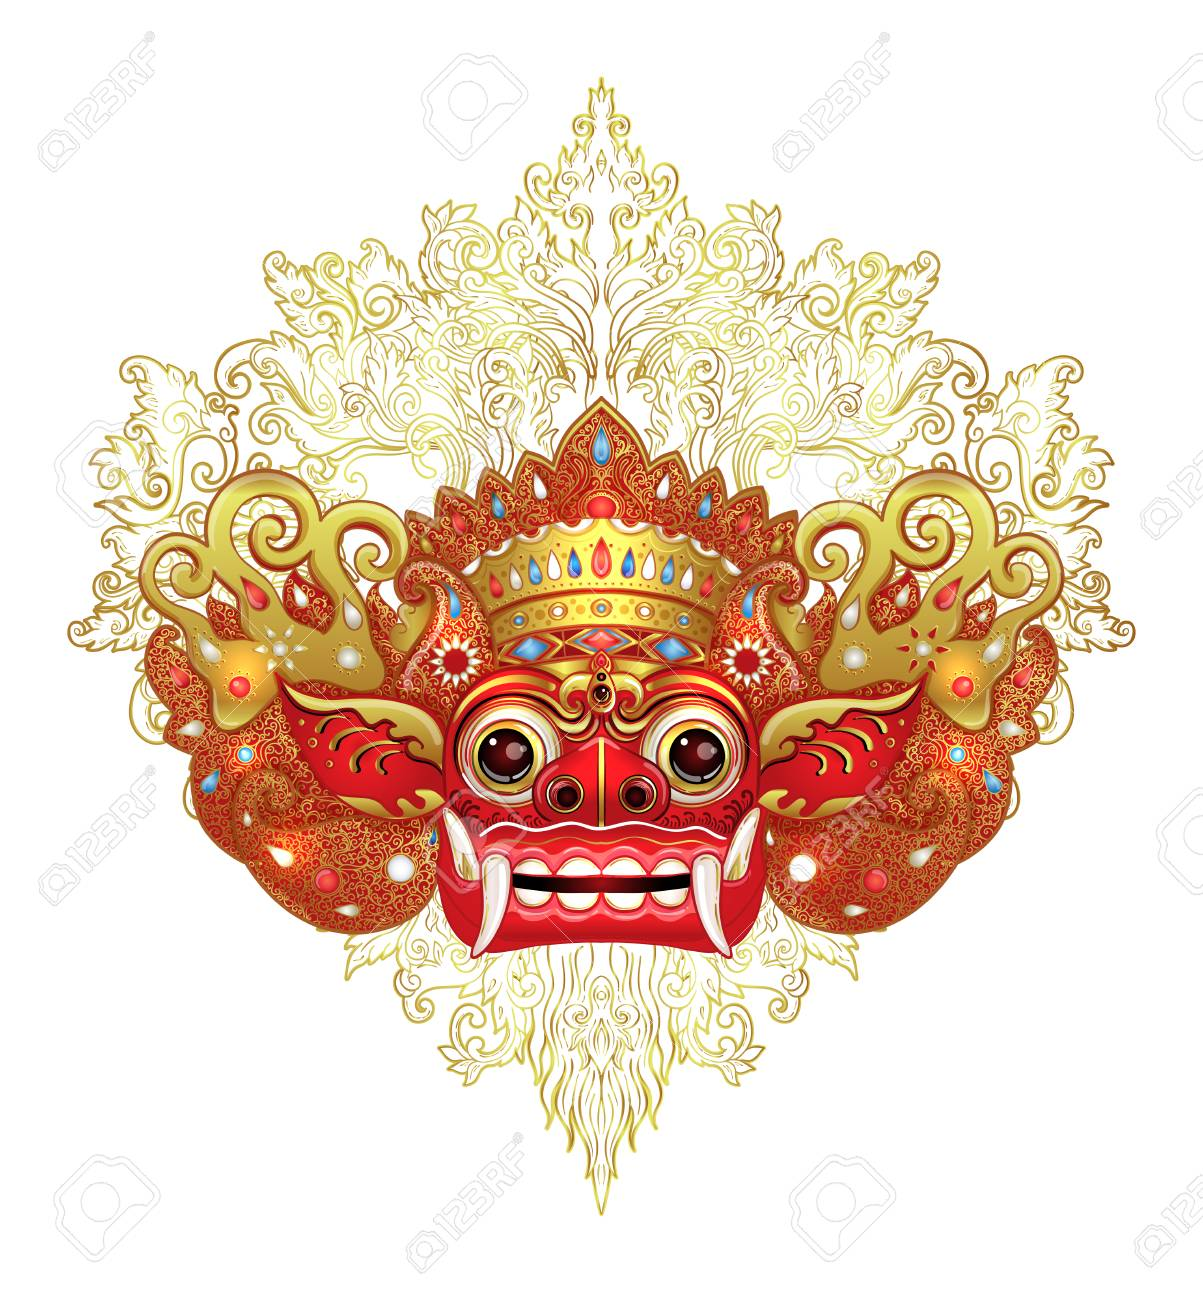 Barong. Traditional ritual Balinese mask. Vector color illustration in red, gold and black isolated. Hindu ethnic symbol, tattoo art, yoga, Bali spiritual design for print, poster, t-shirt, textile. - 99538696